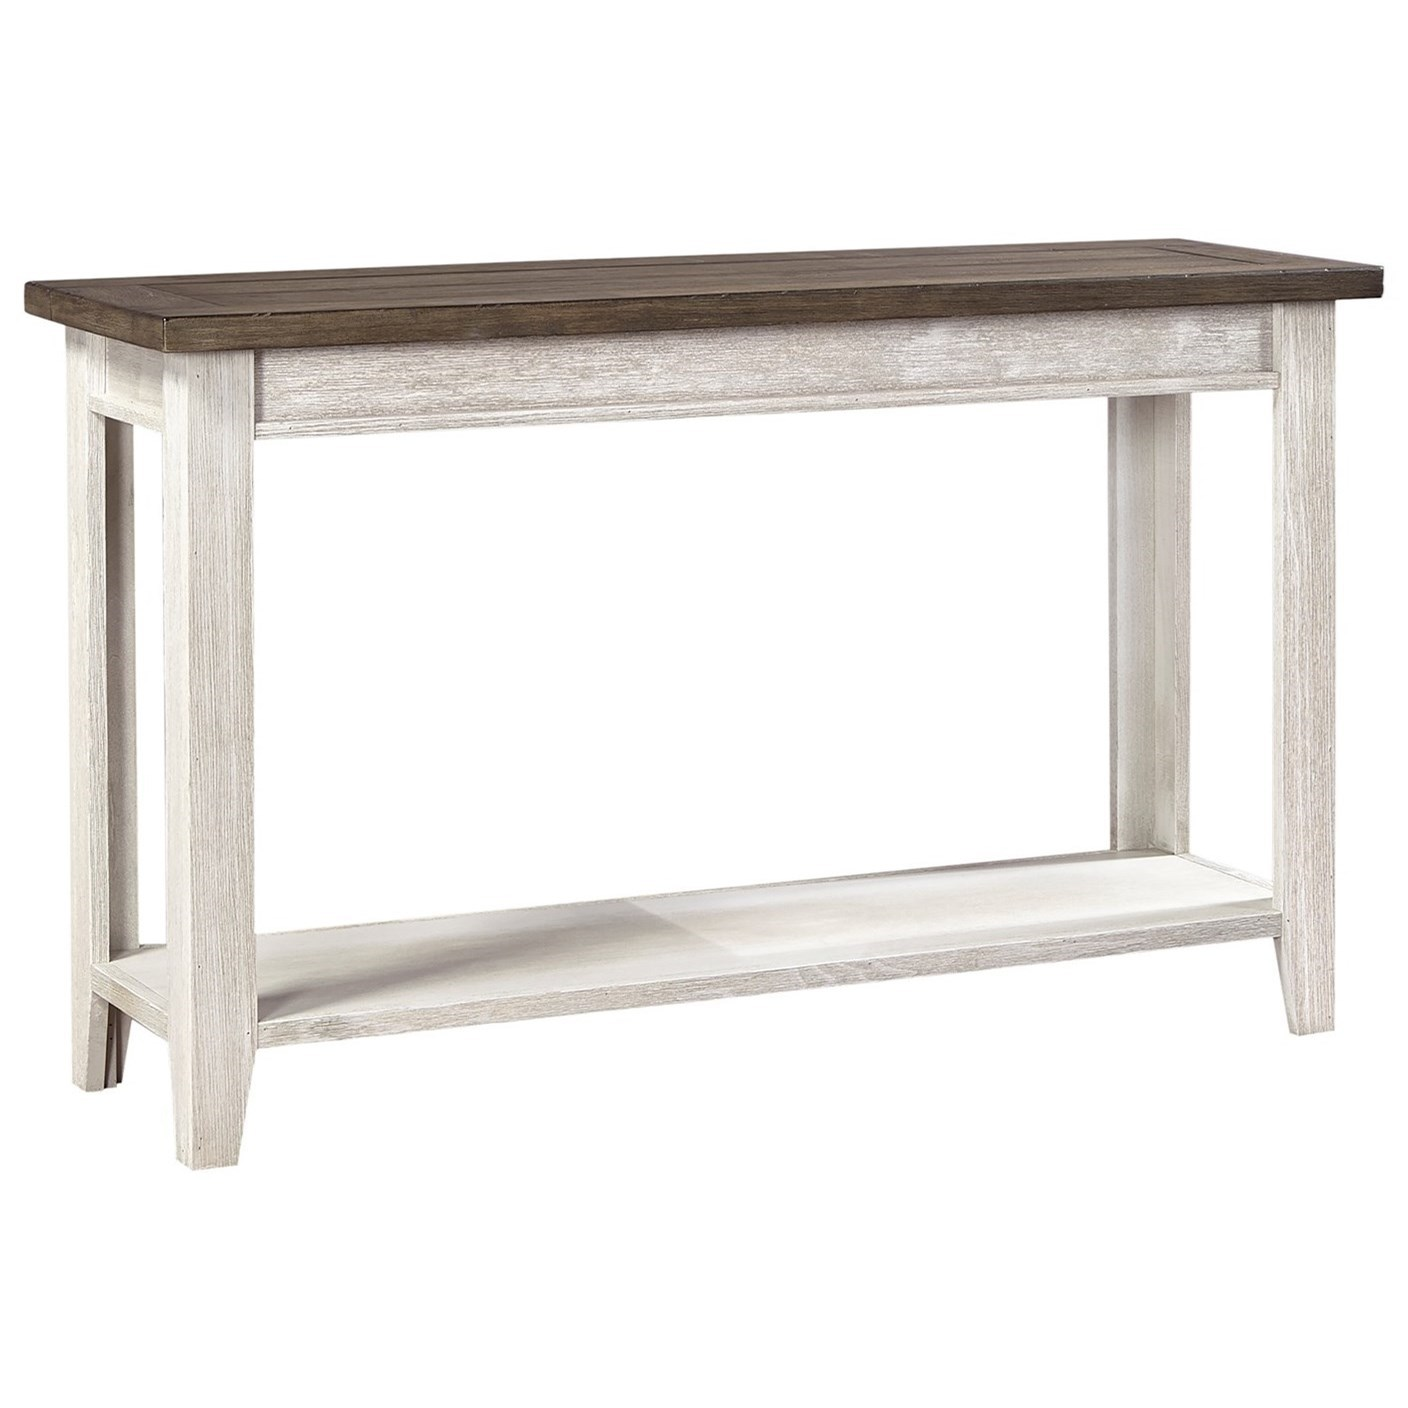 Eastport Sofa Table by Aspenhome at Walker's Furniture